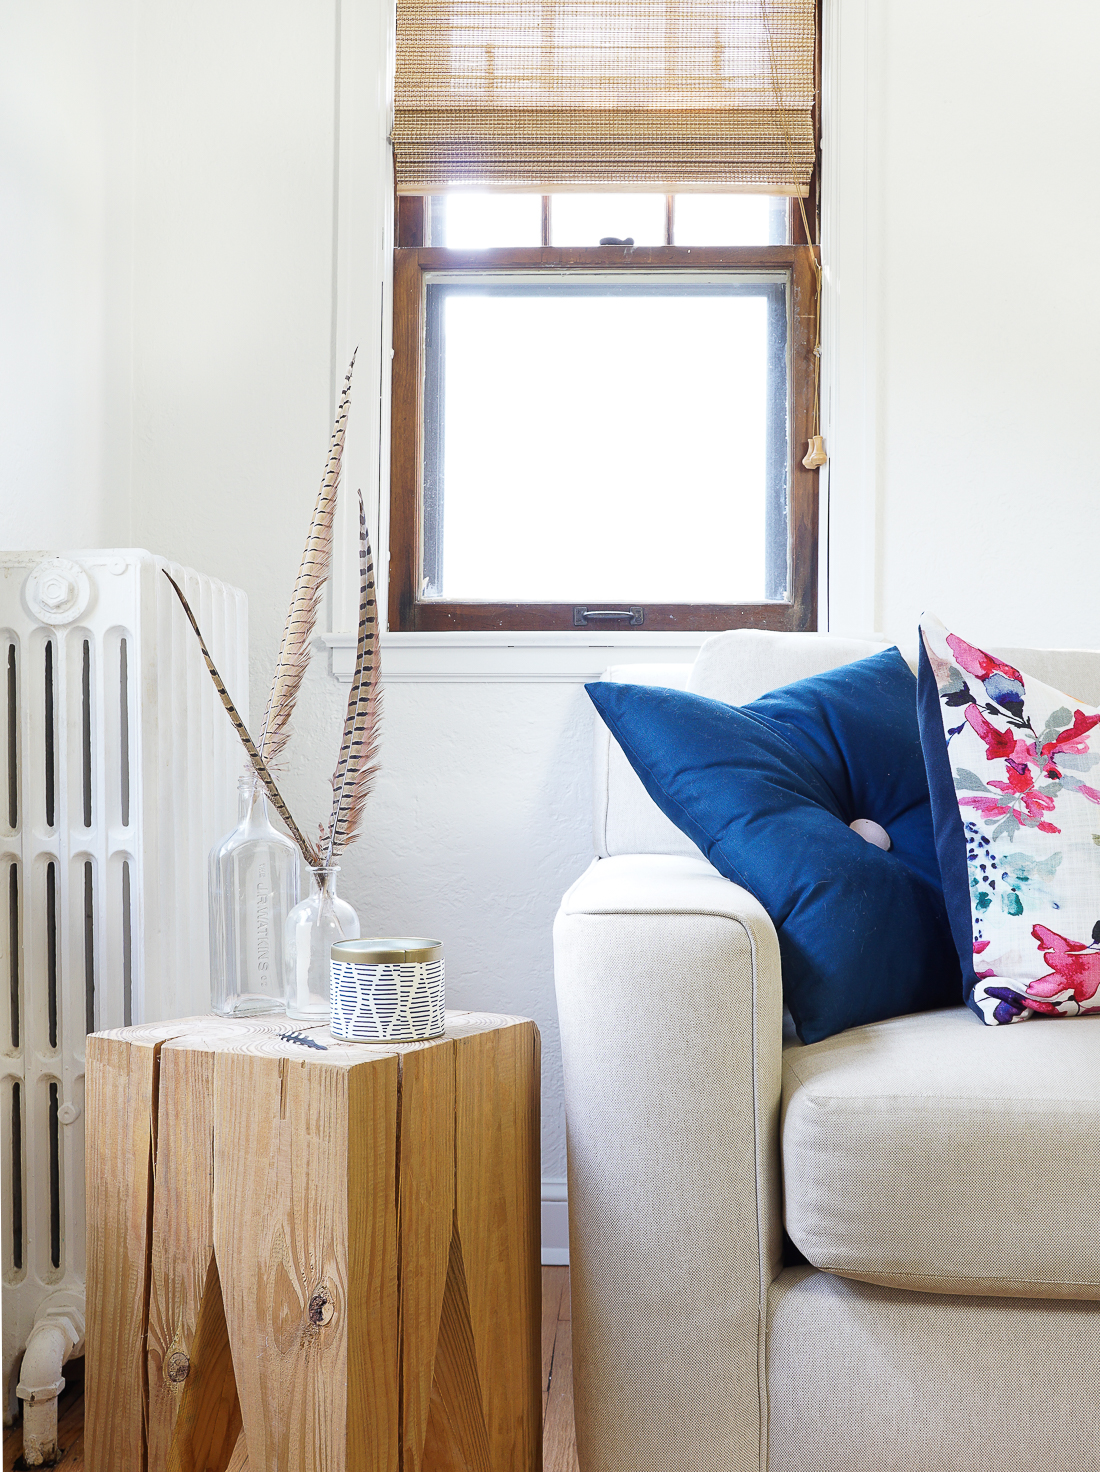 Custom-fit woven window shades are a pretty penny, so if you can't find your window size off-the-shelf, learn exactly how to cut them down to size yourself.